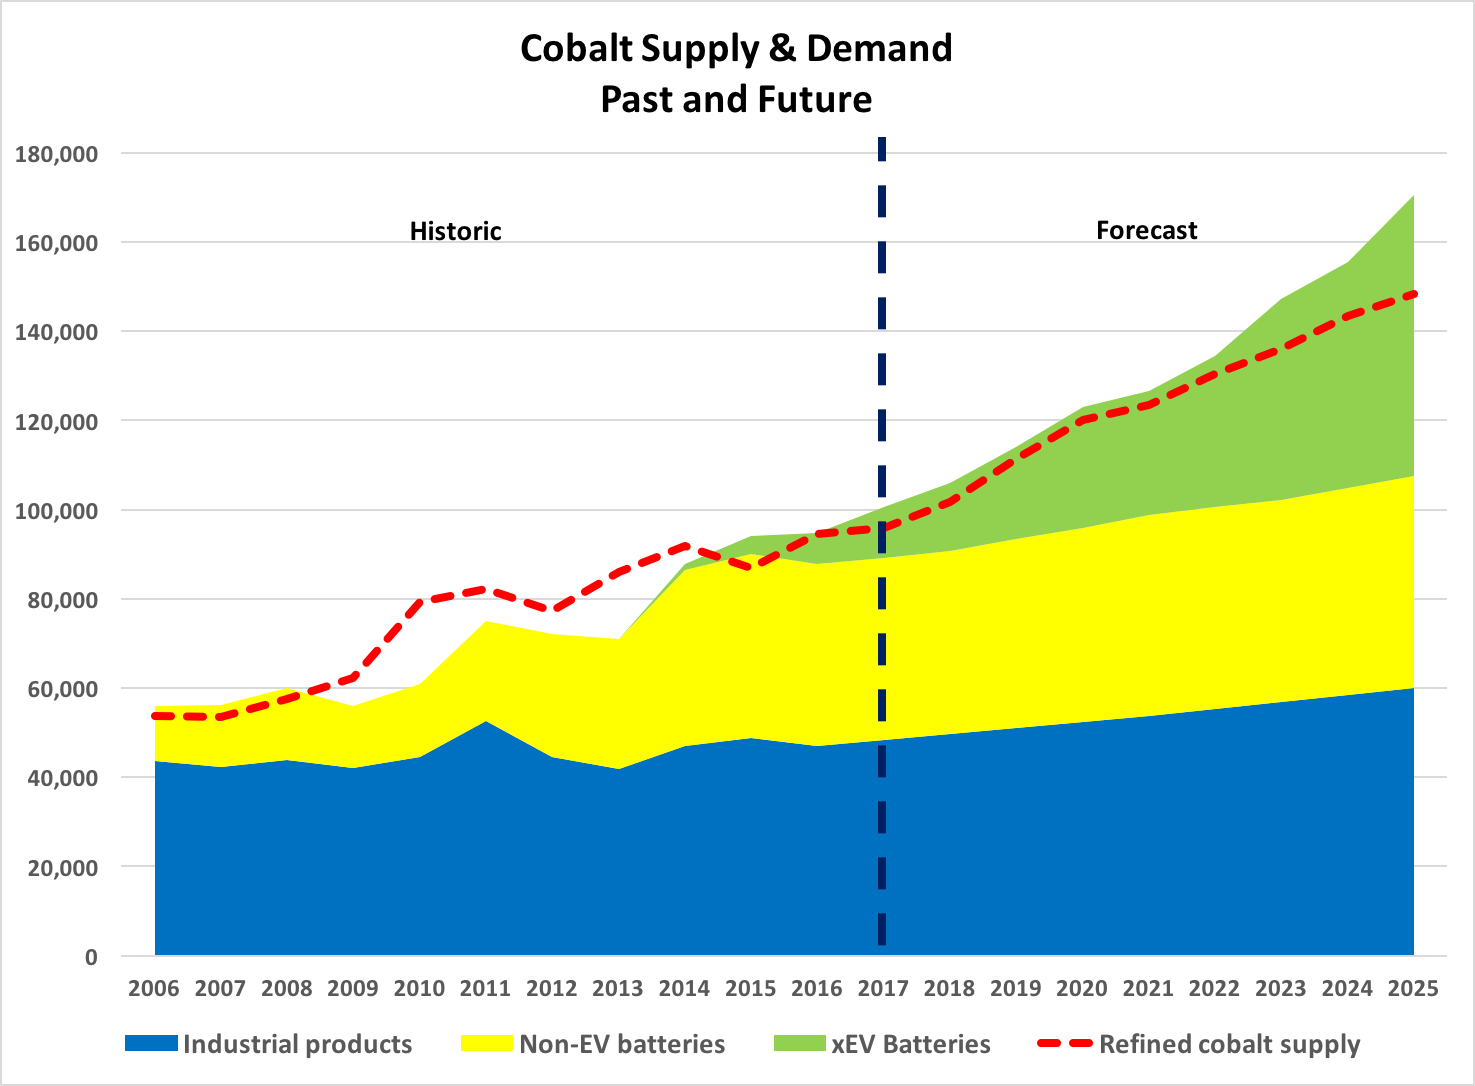 Morgan Stanley S Cobalt Report Mirrors My Analysis Of